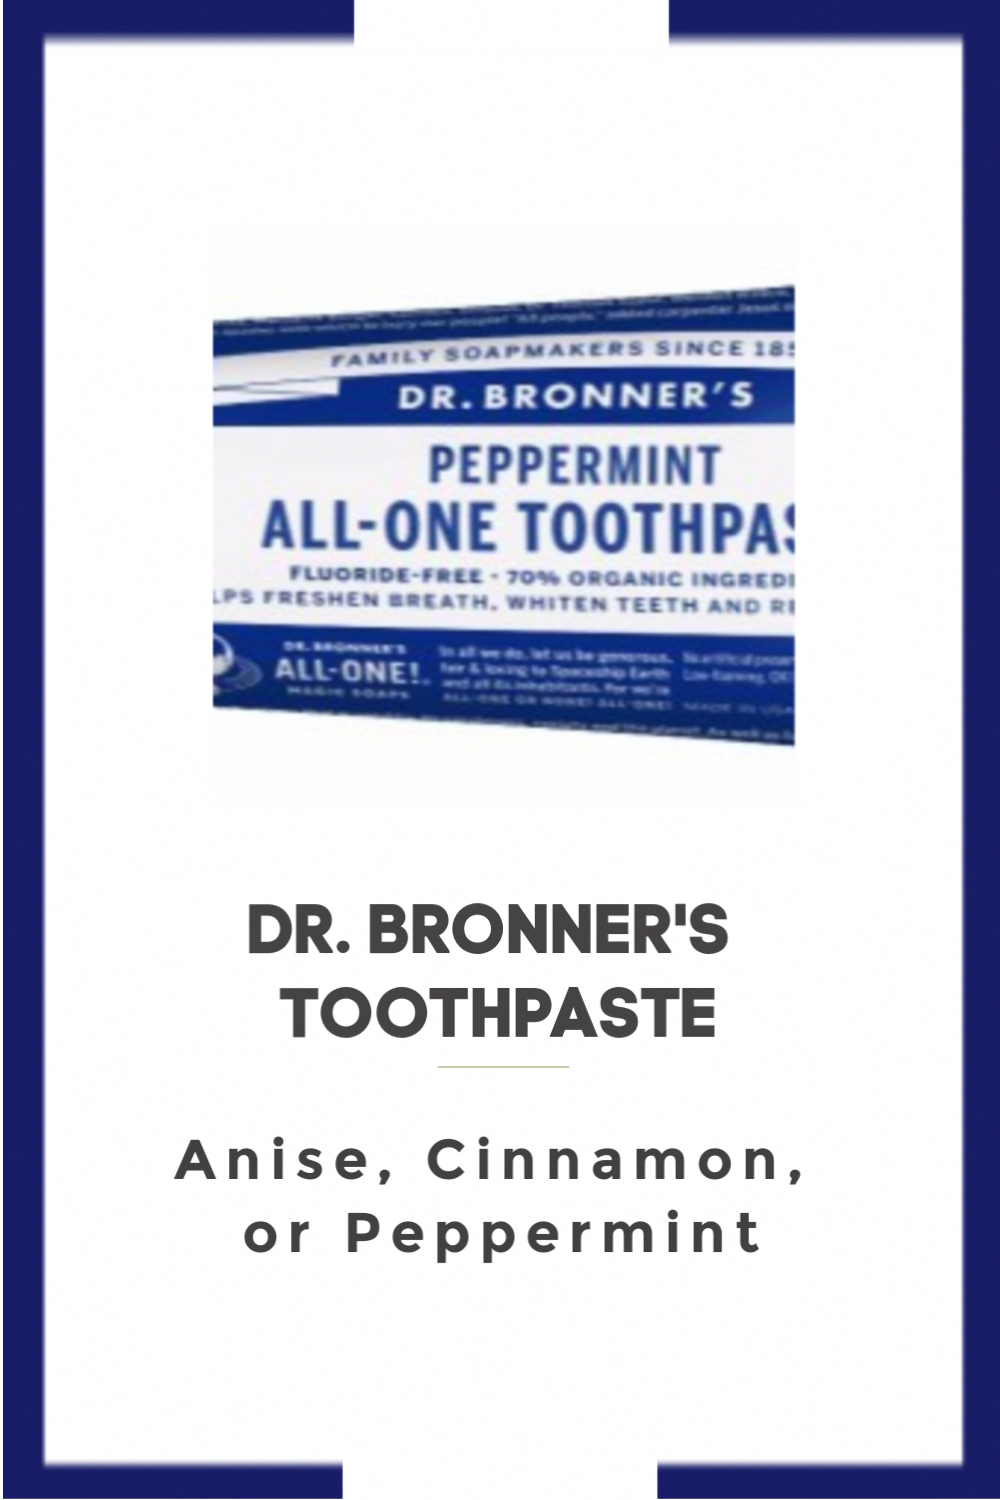 Dr. Bronner's Toothpaste in 2020 Oral care, Gum surgery